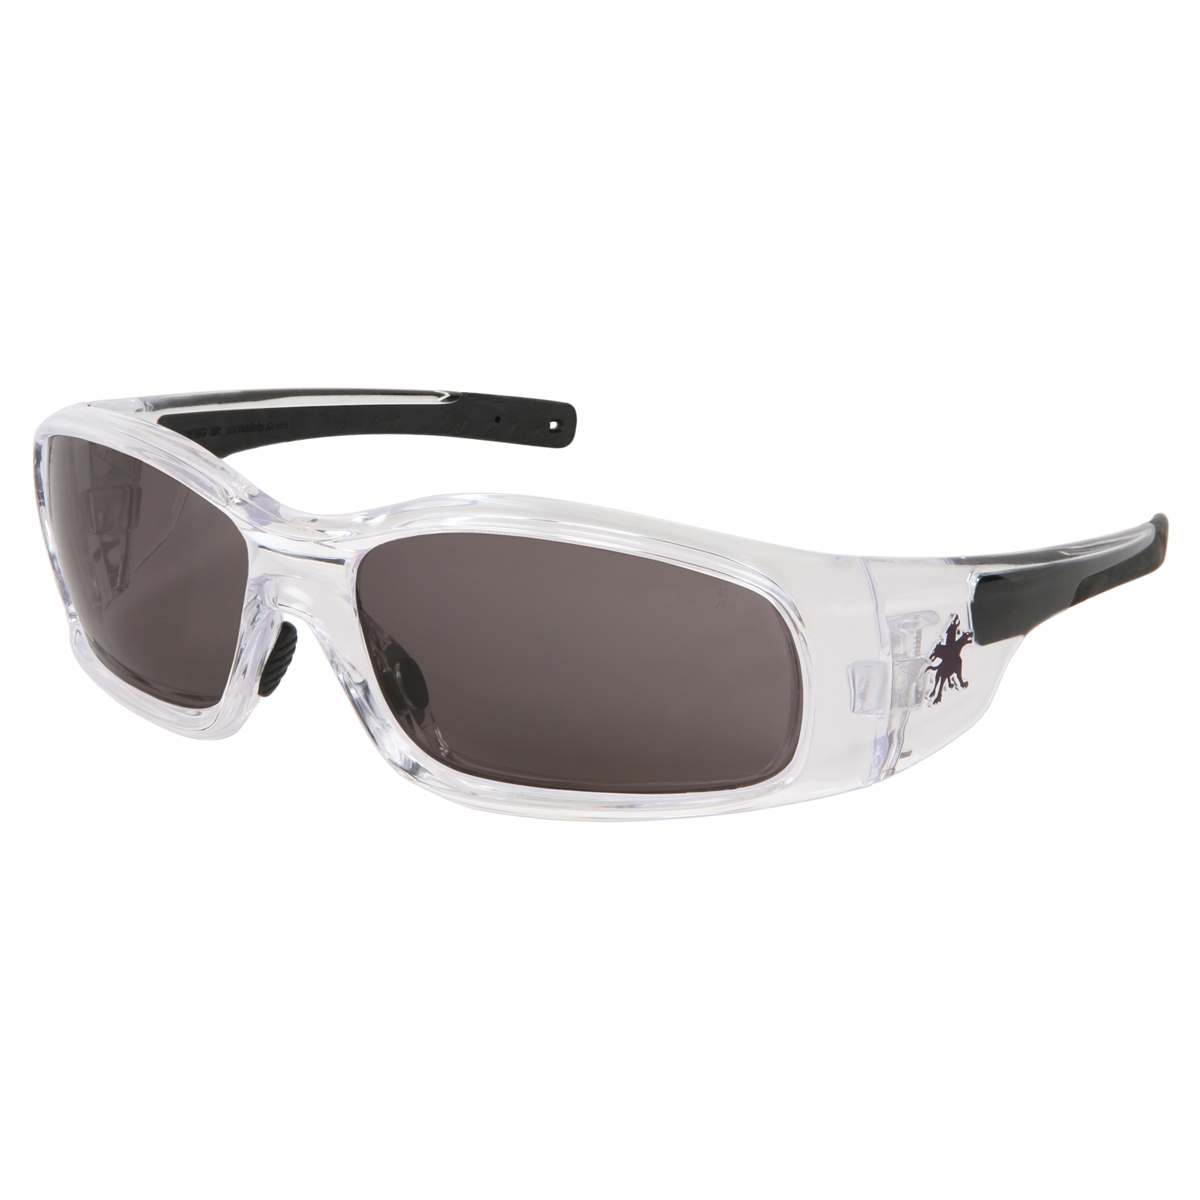 Crews Swagger Safety Glasses - Clear Frame - Gray Anti-Fog ...